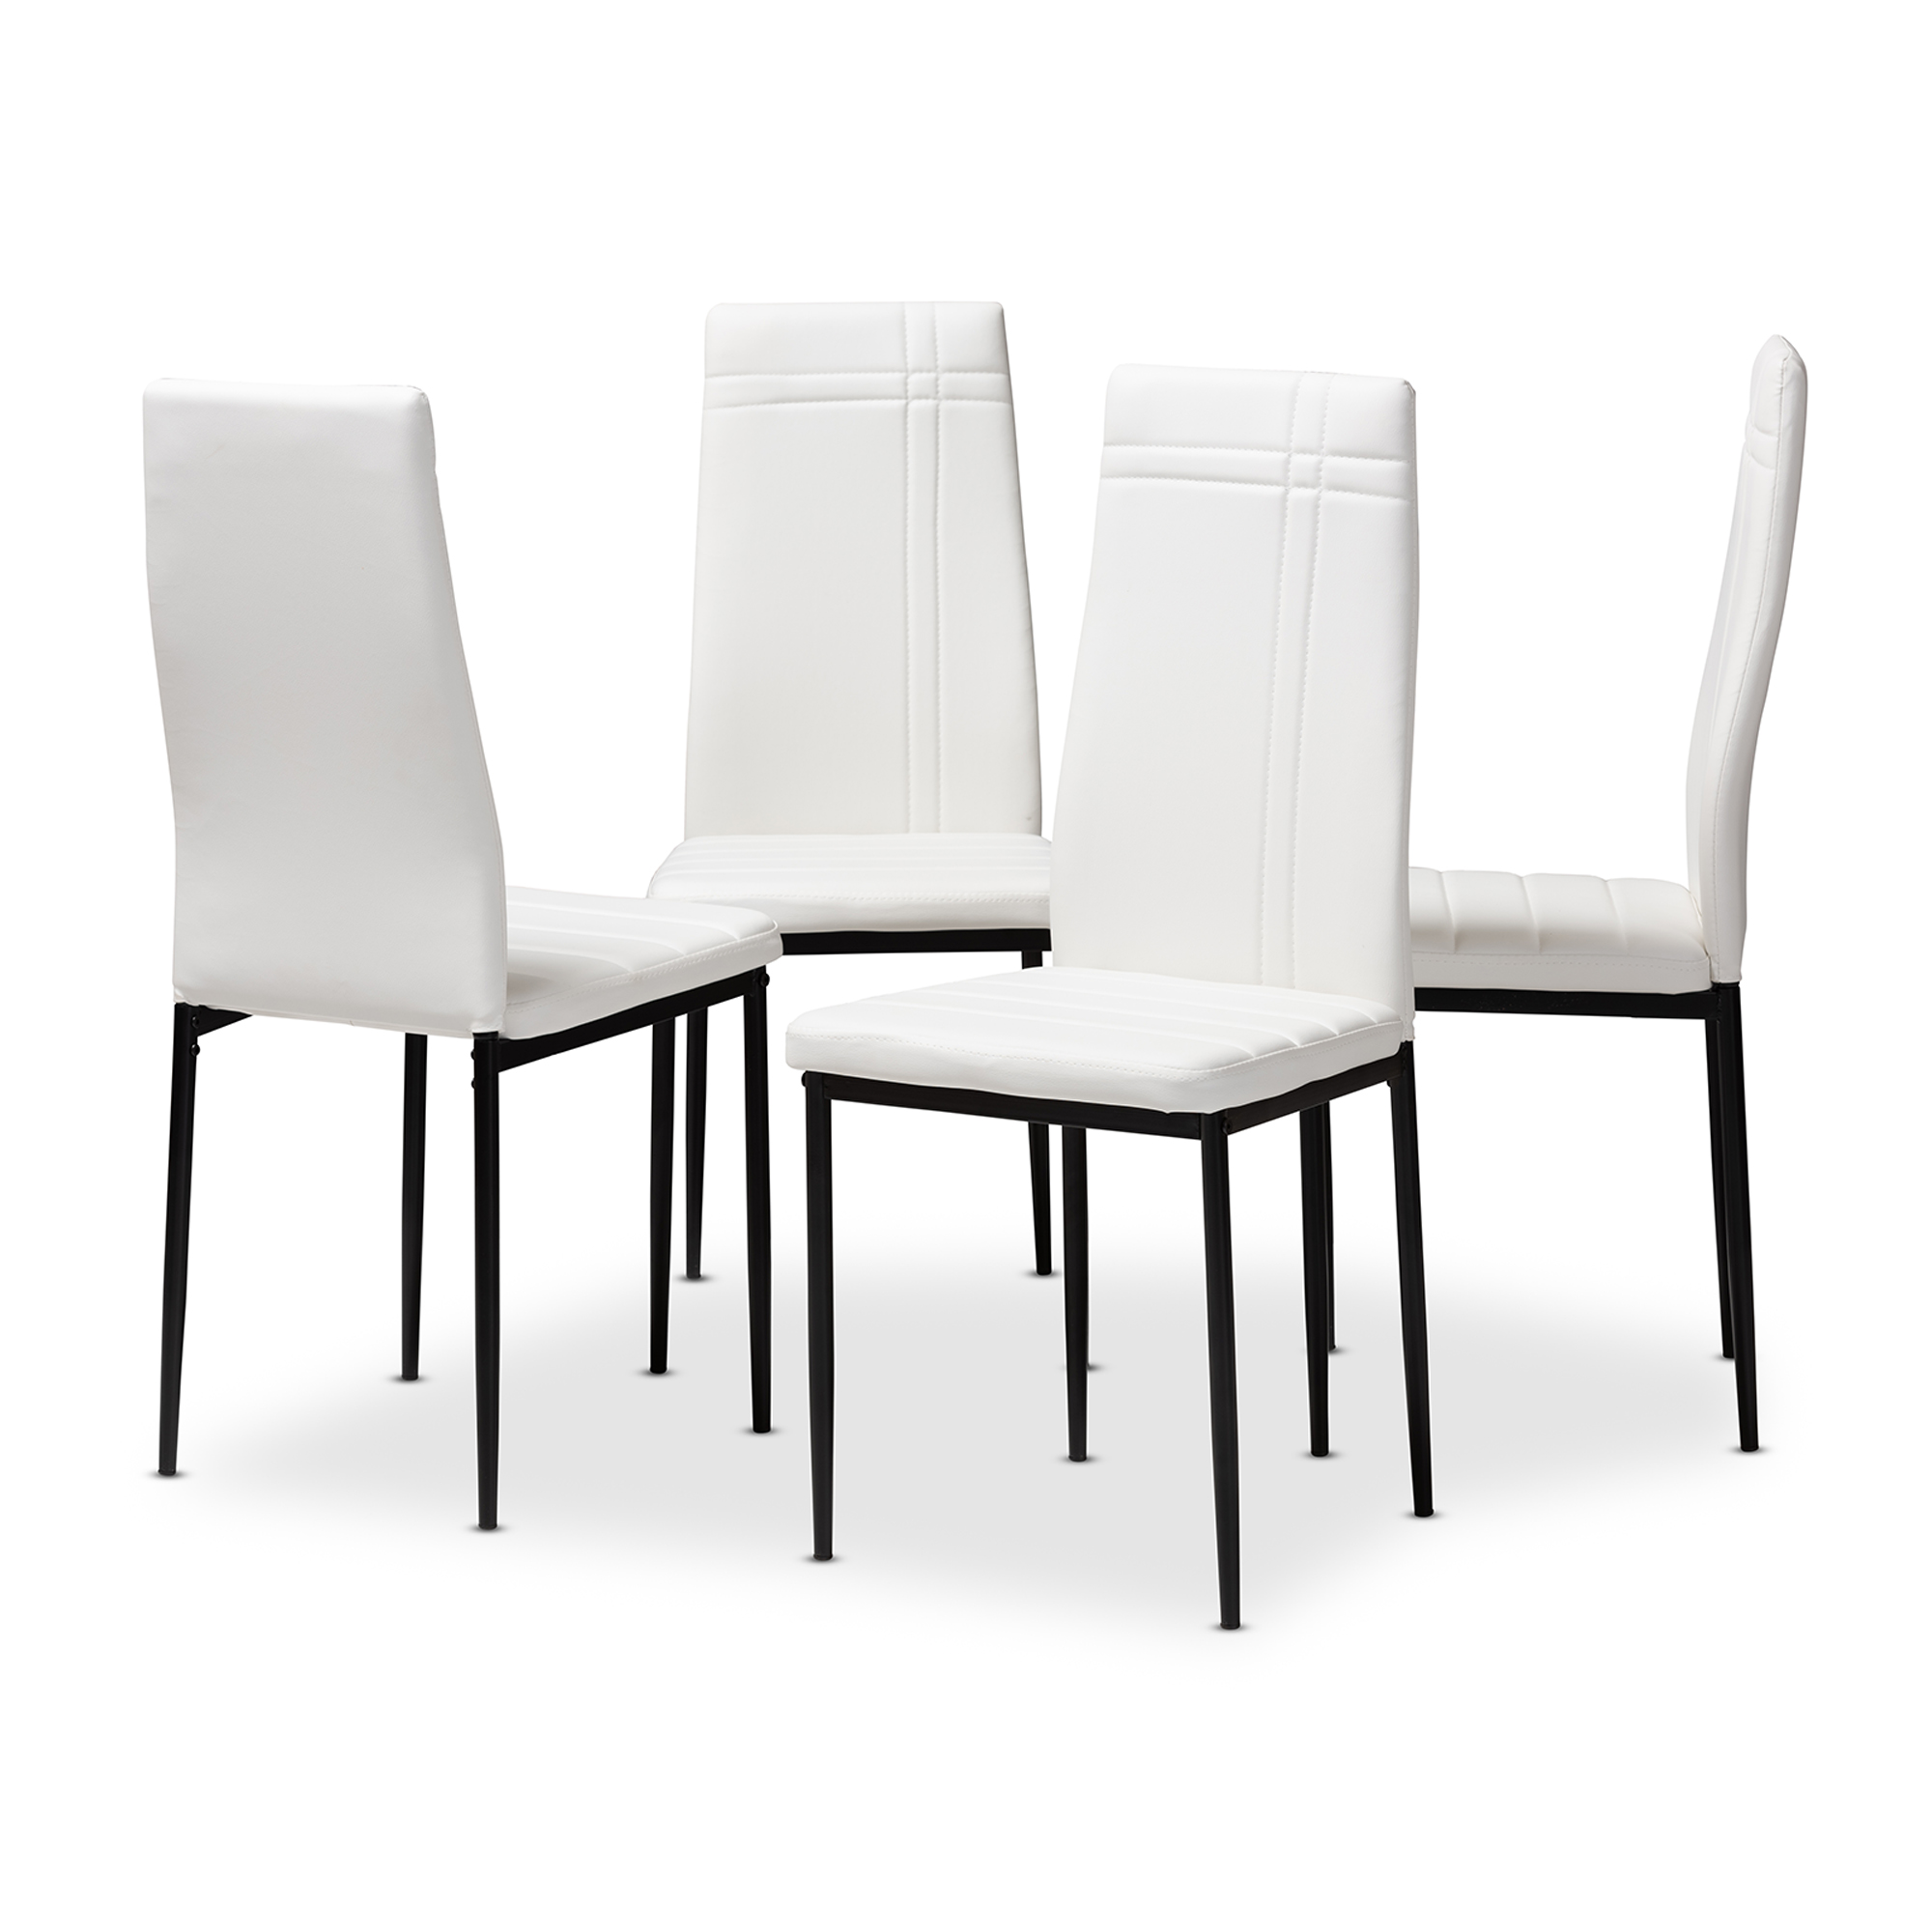 Chairs 9 Dining Chairs Metal Leg Faux Leather Padded Seat Kitchen ...